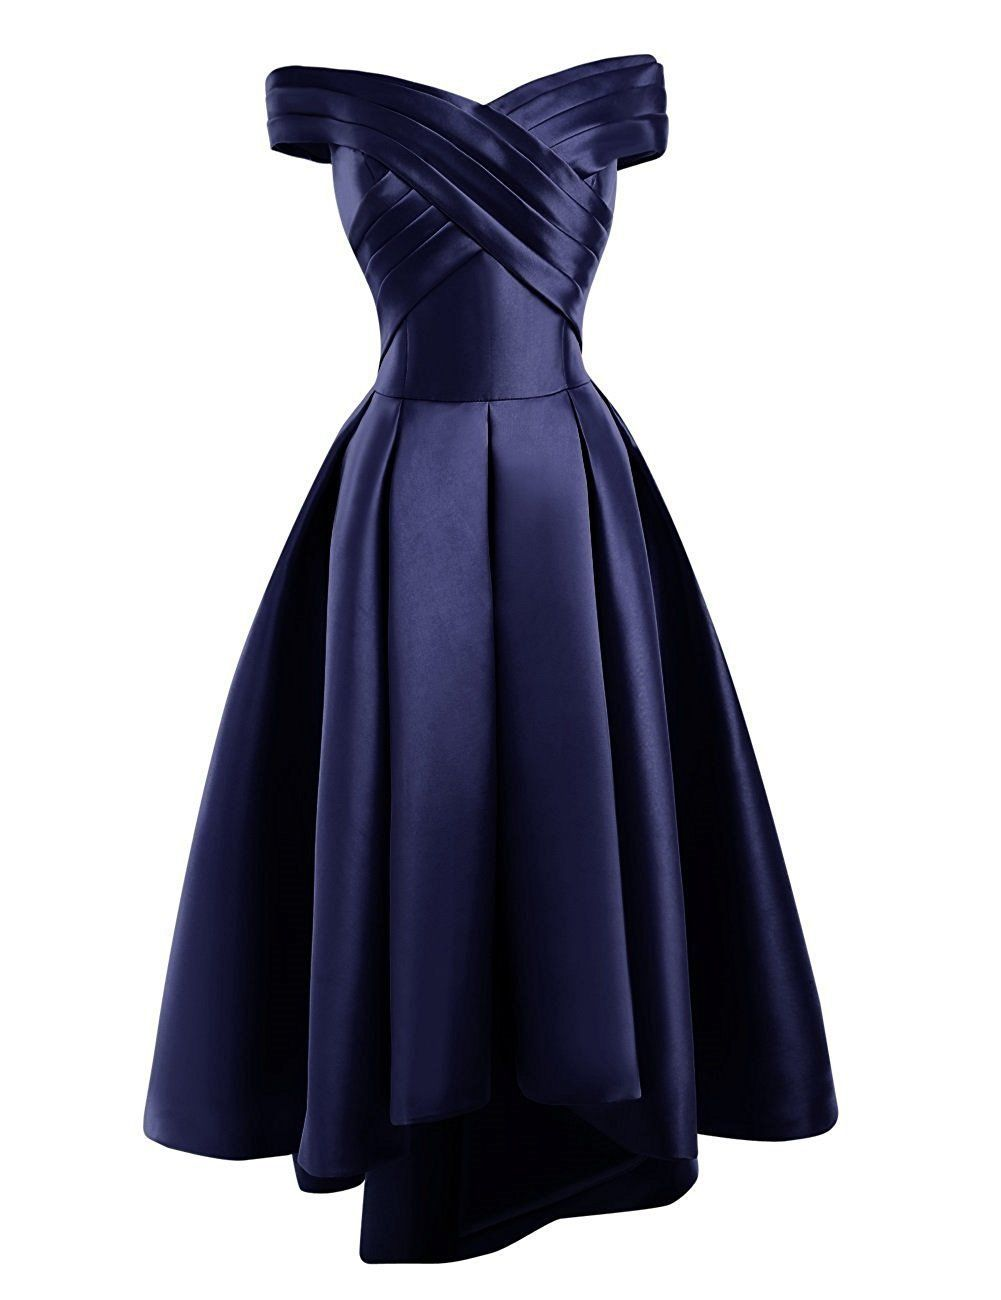 Bethany dark navy blue  duchess satin on off shoulder hi lo bridesmaid evening prom wedding bridal dress loulous bridal boutique ltd uk